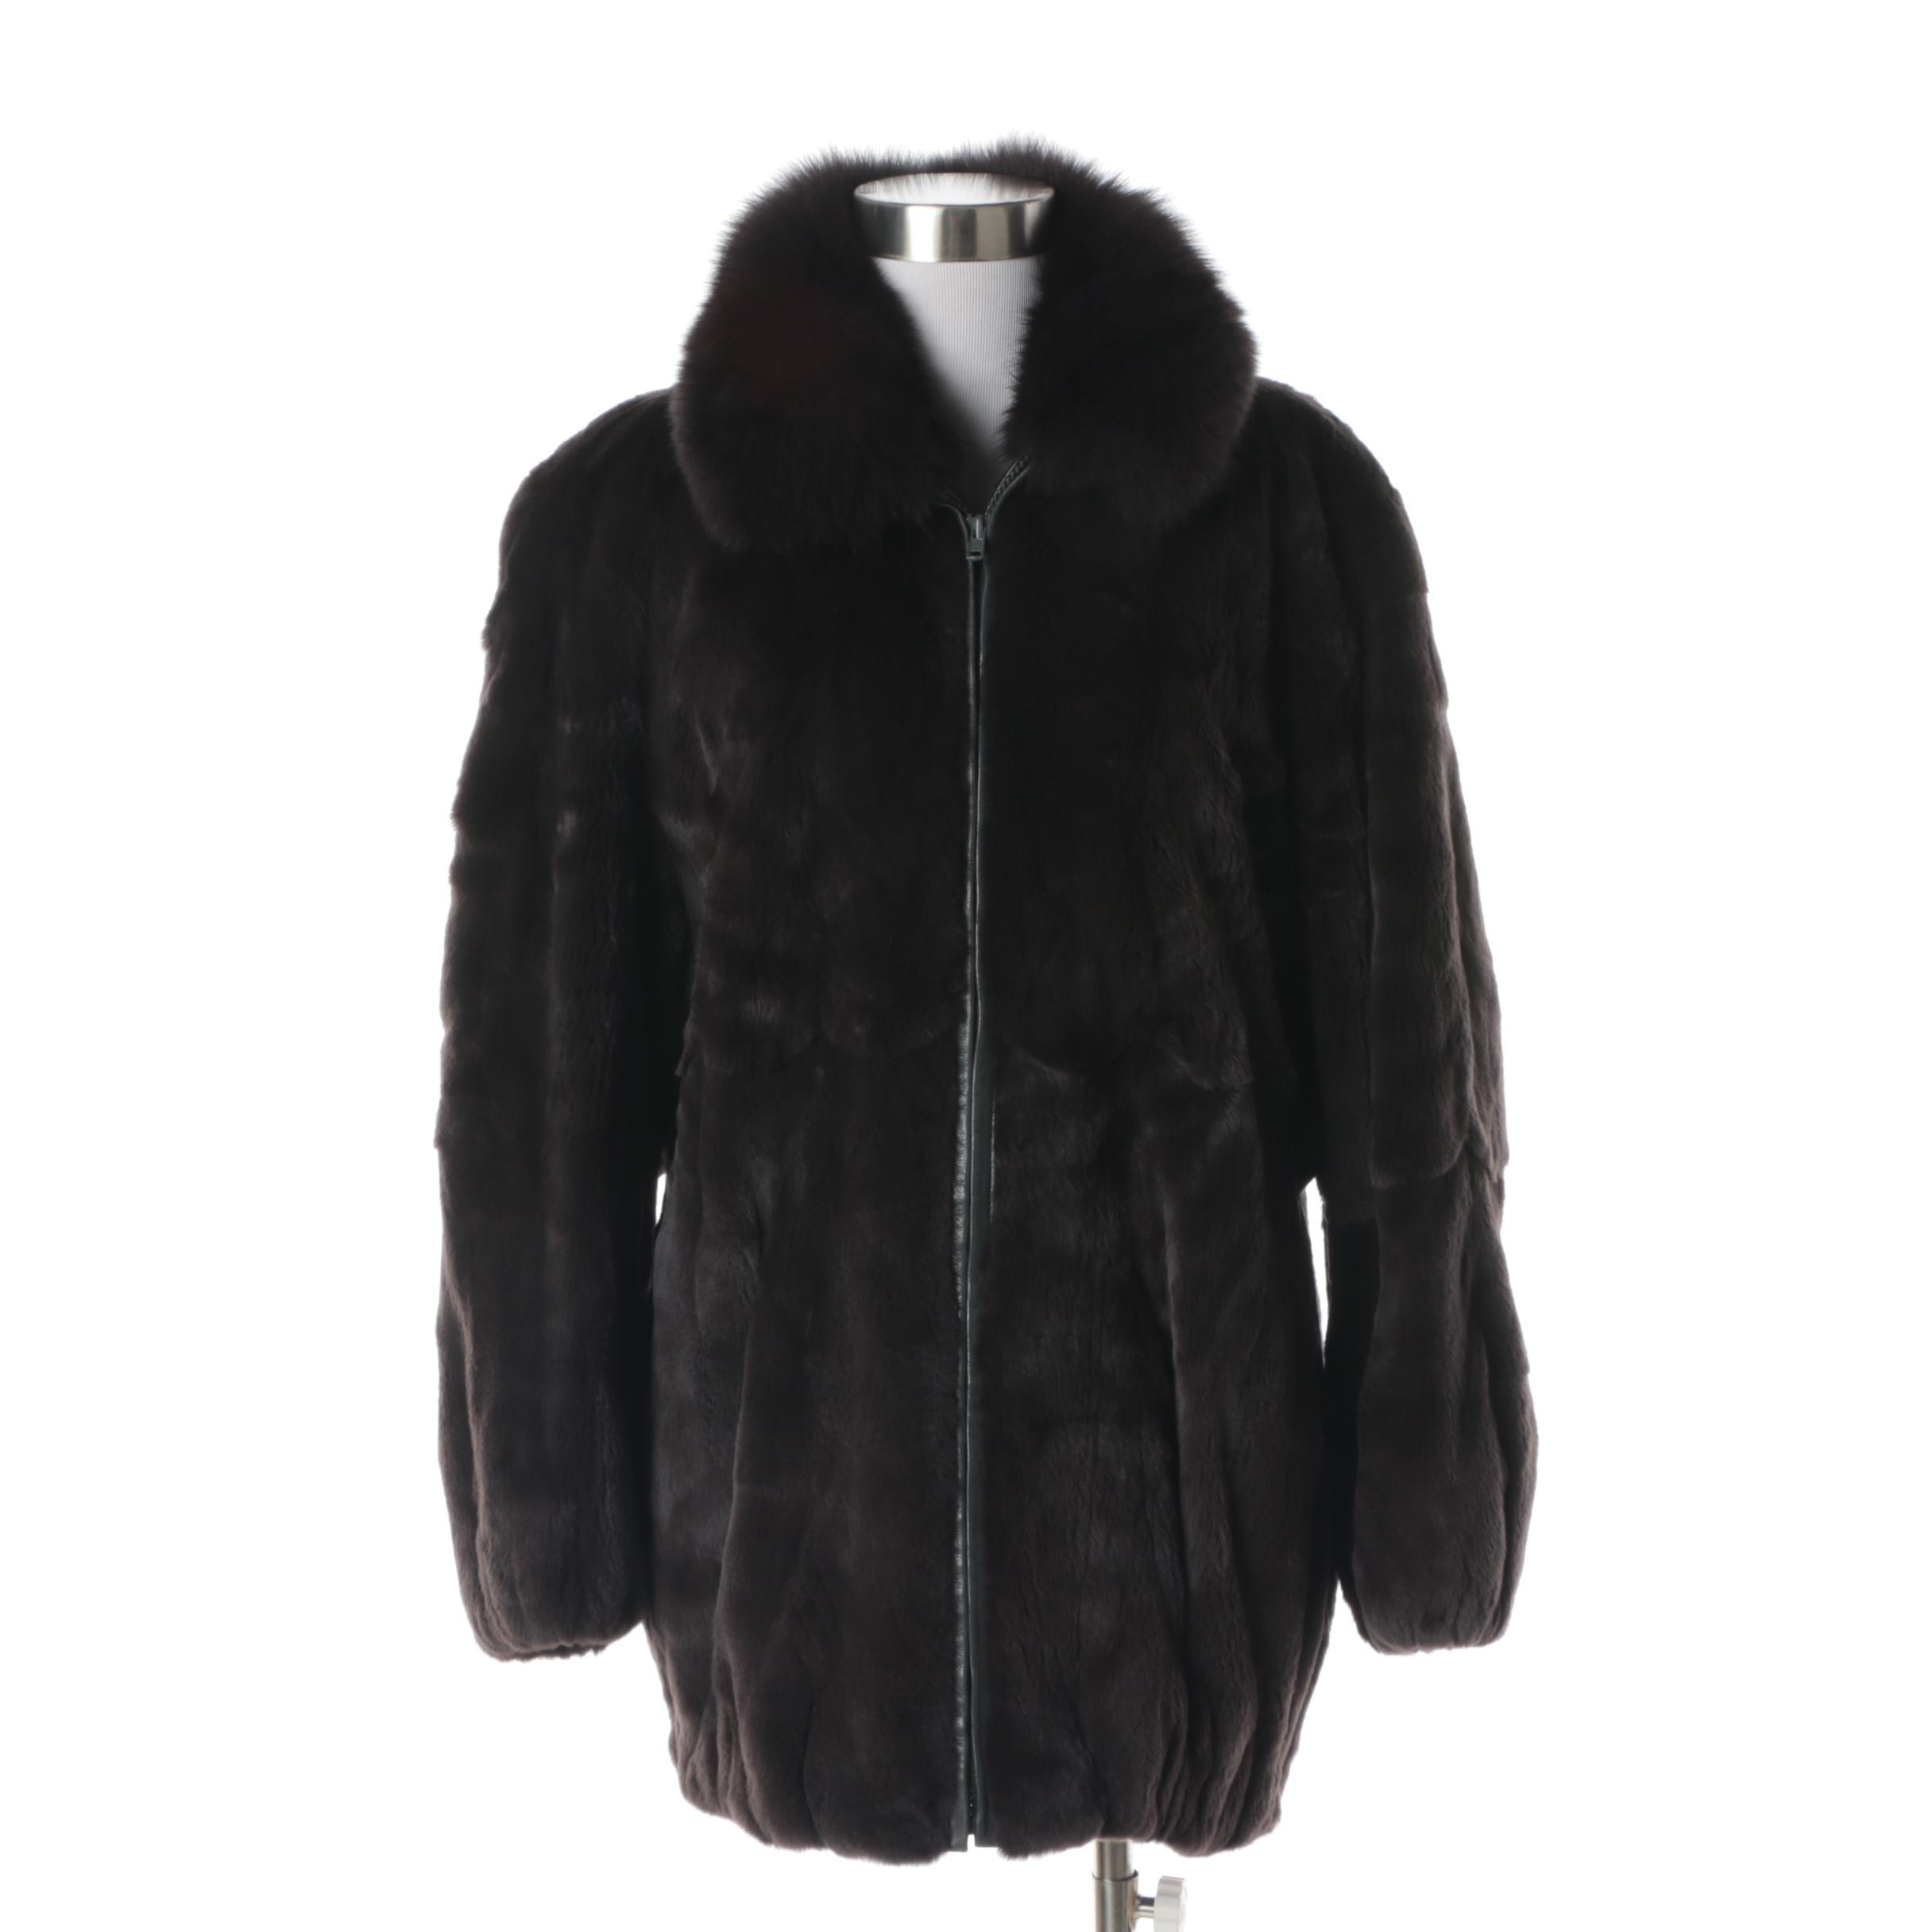 Women's Jay-Lennad Furs Dyed Sheared Rabbit Fur Coat with Fox Fur Collar